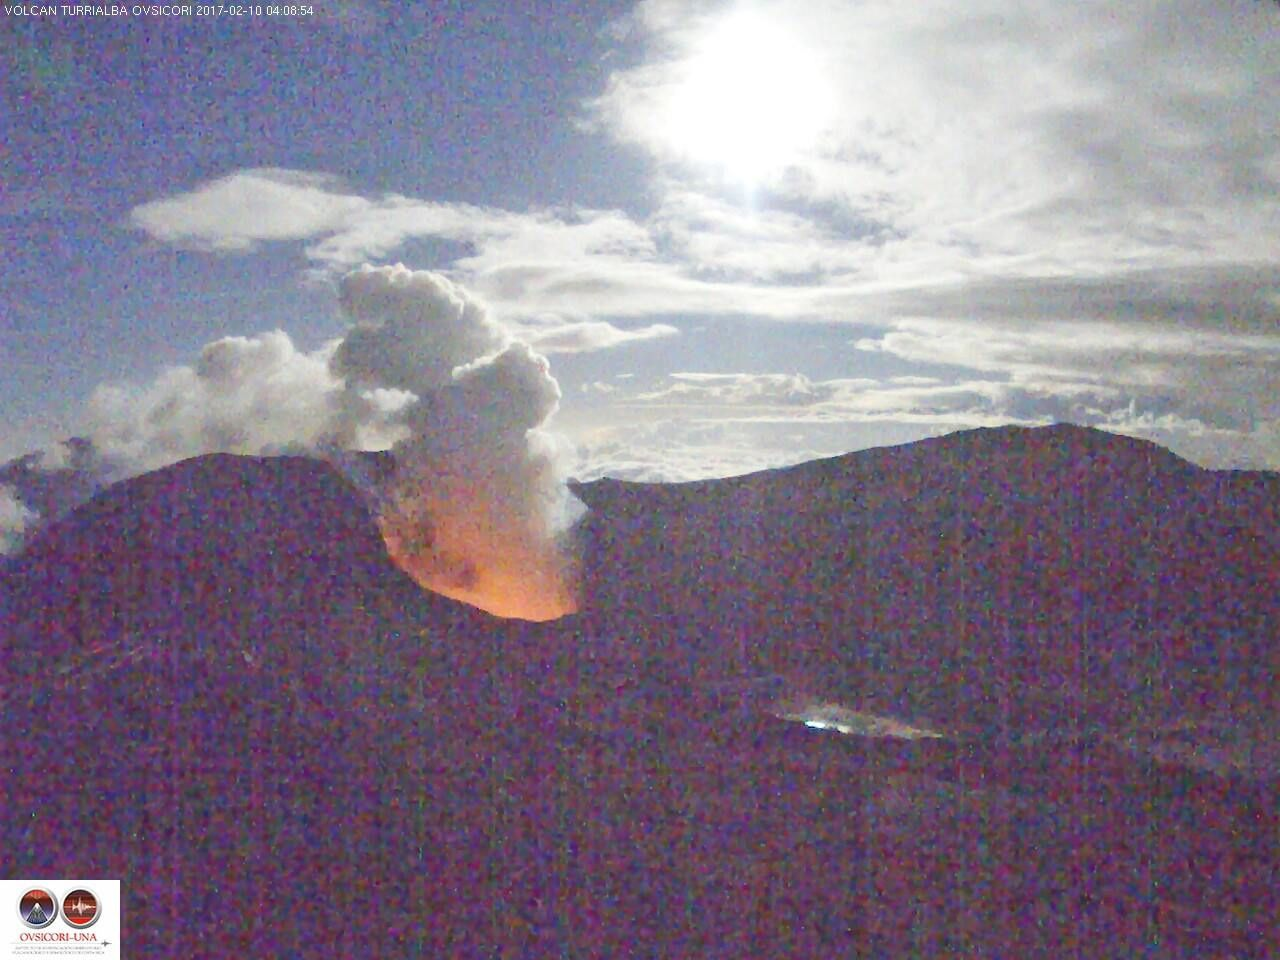 Turrialba - 10.02.2017 / 4h08 - incandescence dans la cratère actif (spectre visible) - photo webcam Ovsicori